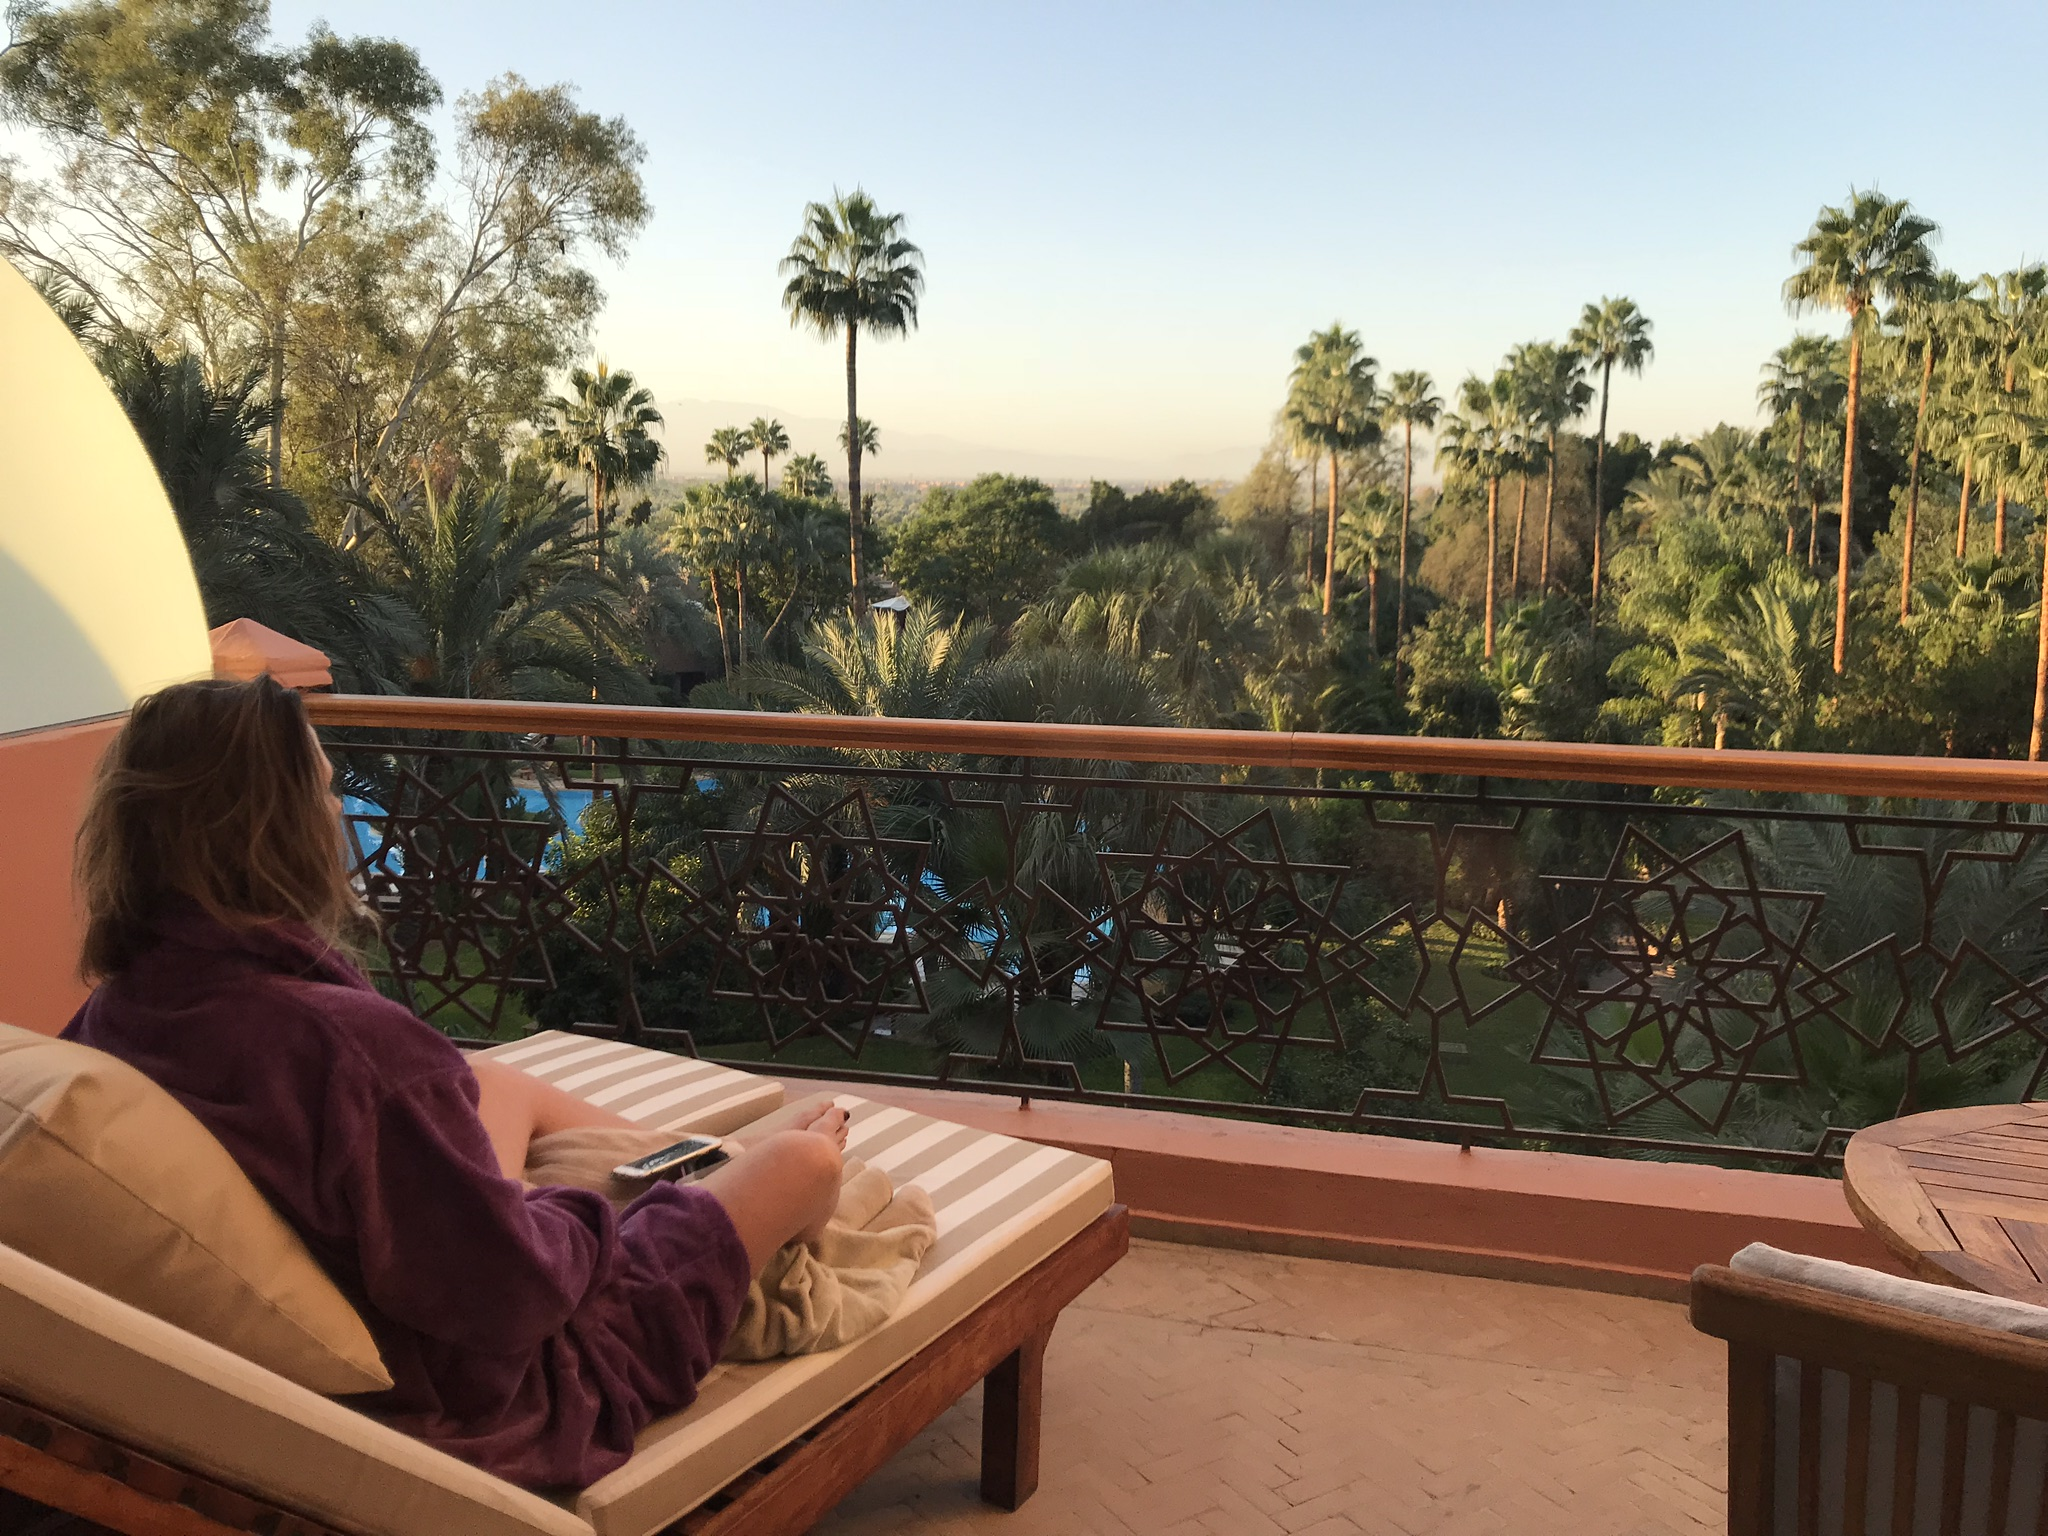 Room with a view: Morning meditation on the balcony at Es Saadi